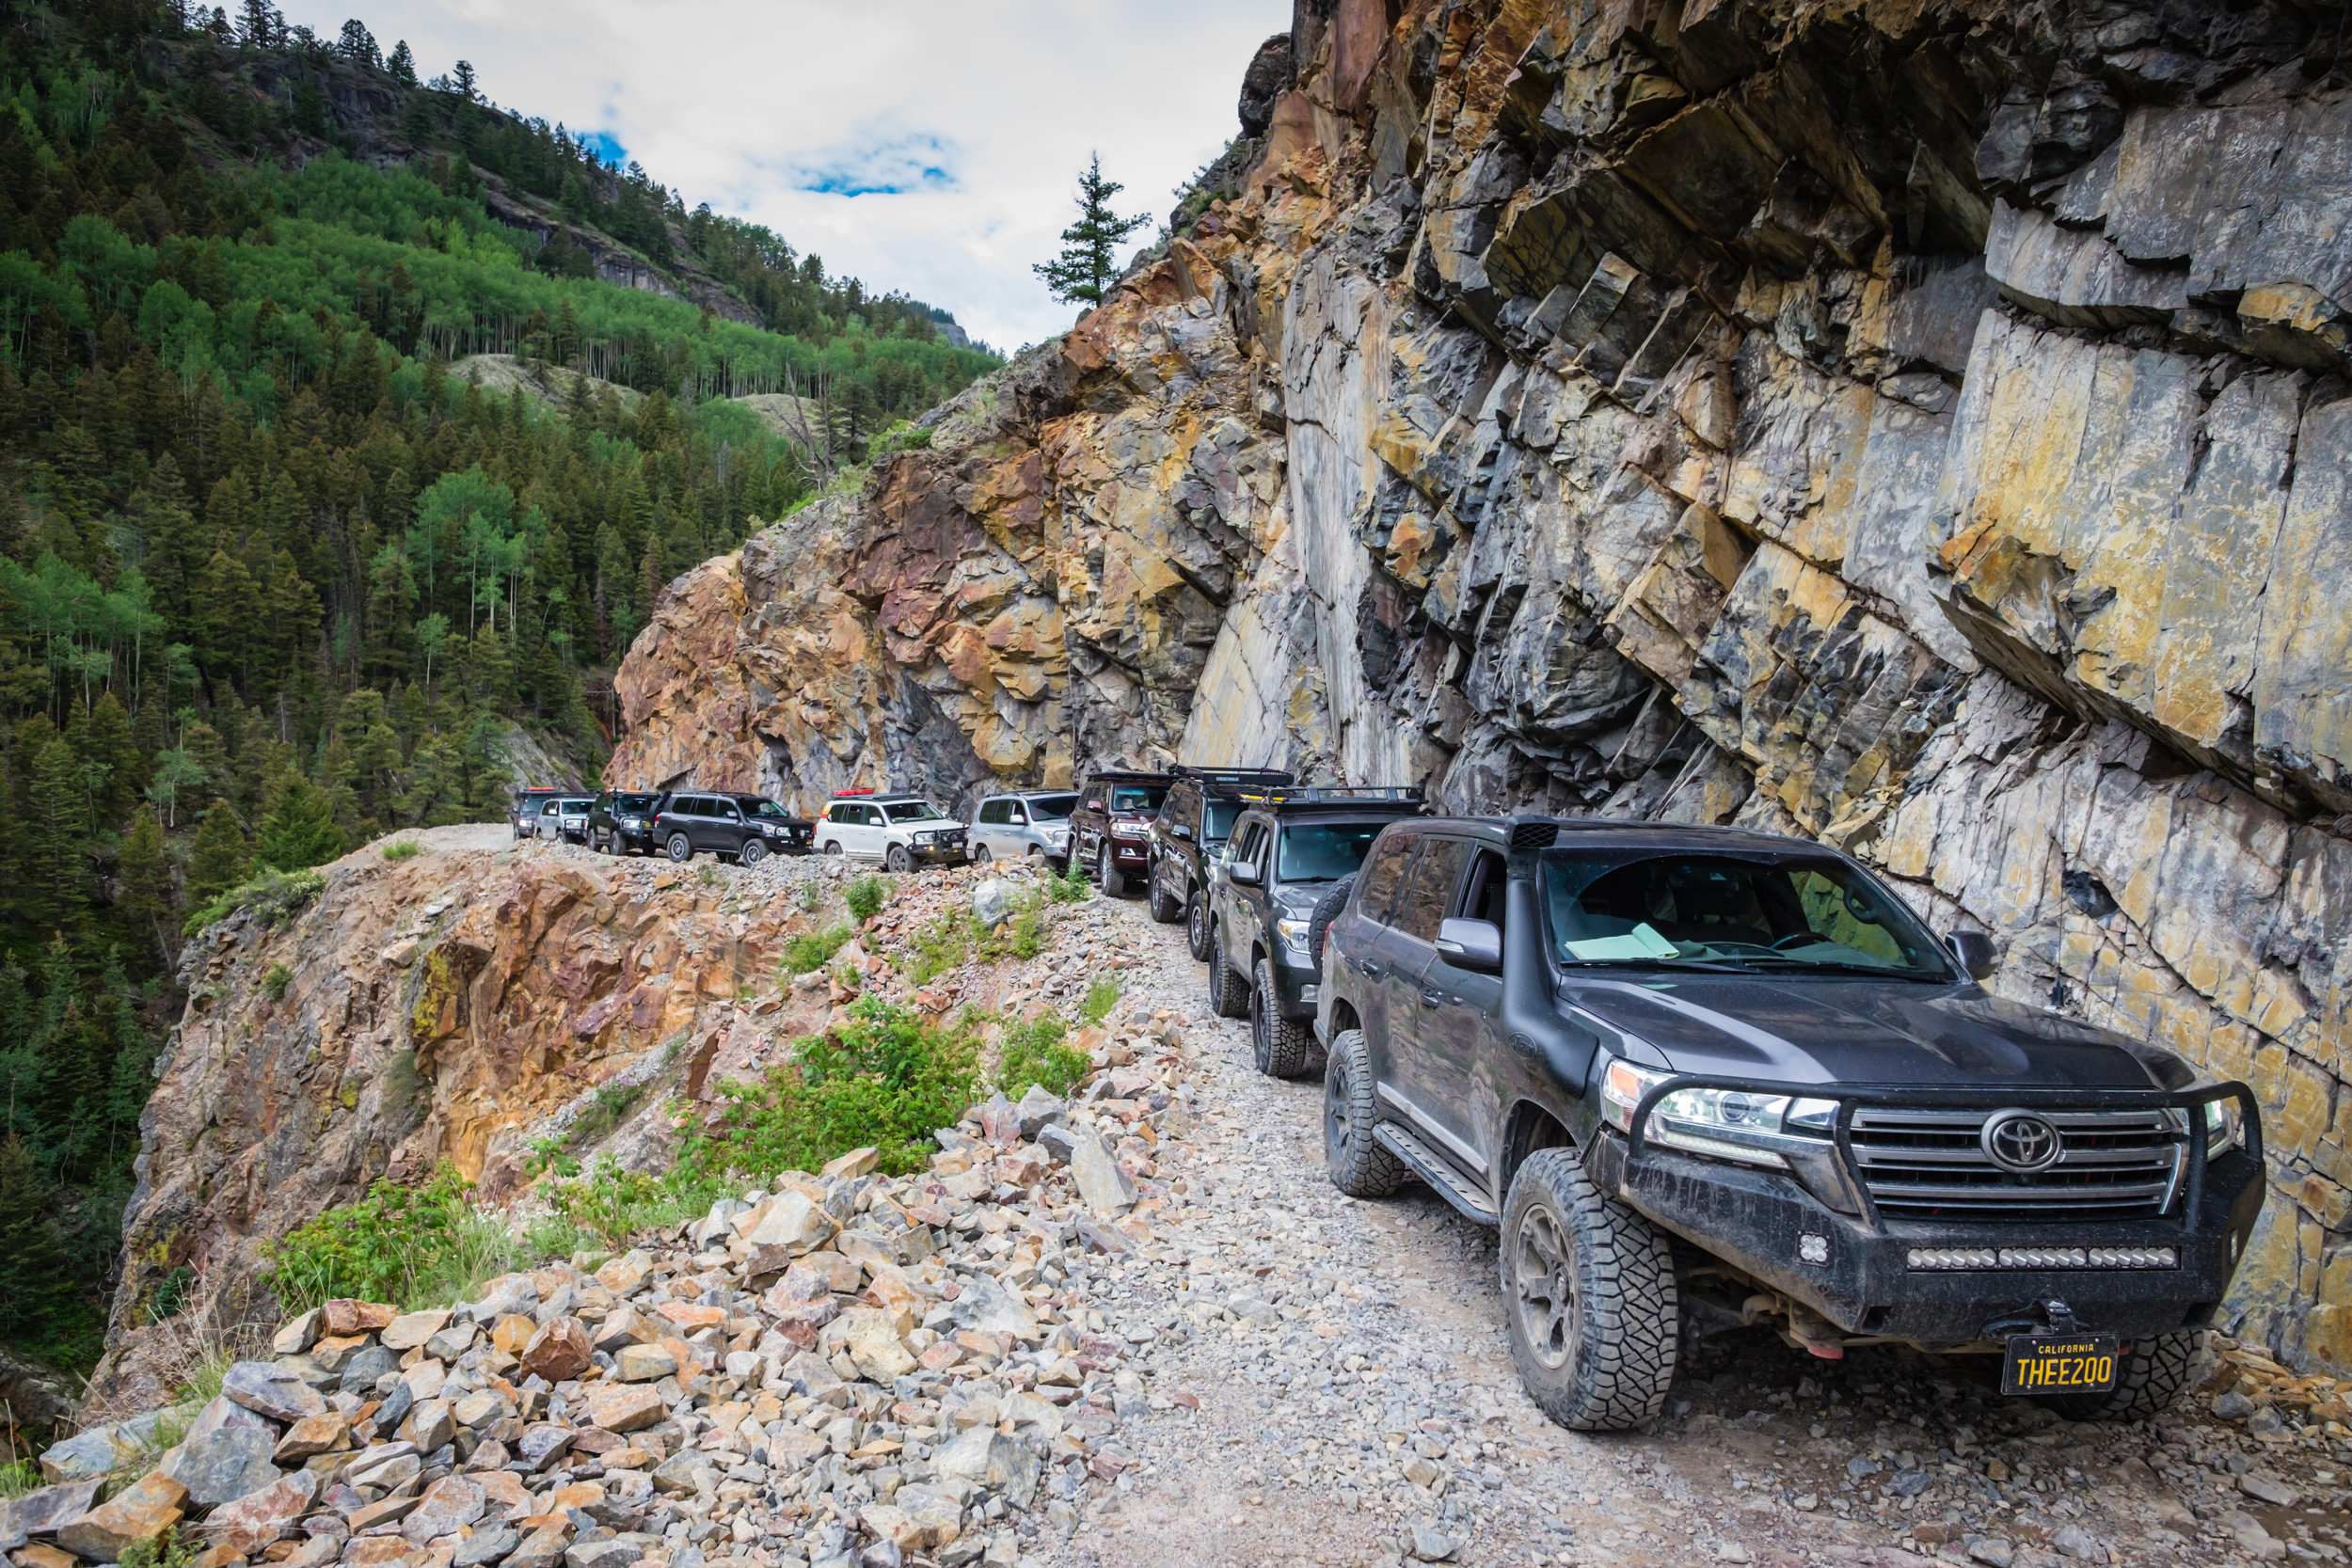 2019 LCDC Ouray - July 31th - August 3rd